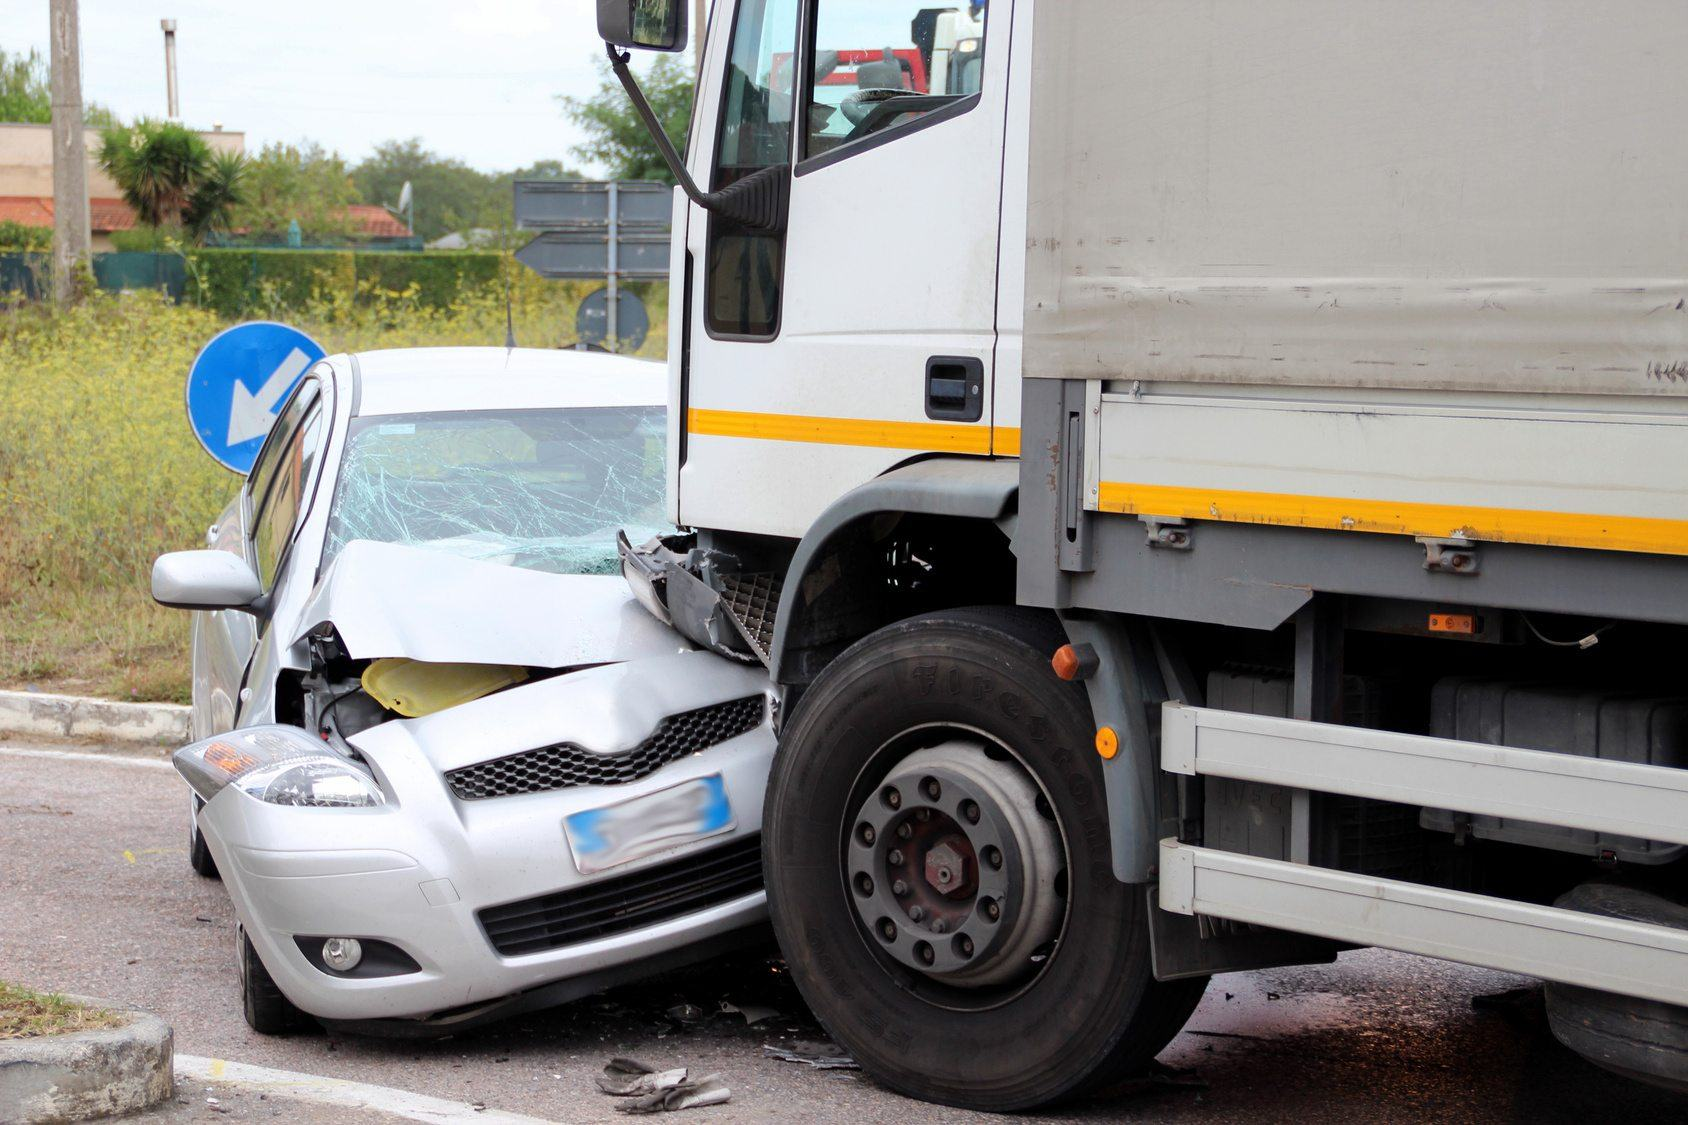 Injured because of Truck Accident?